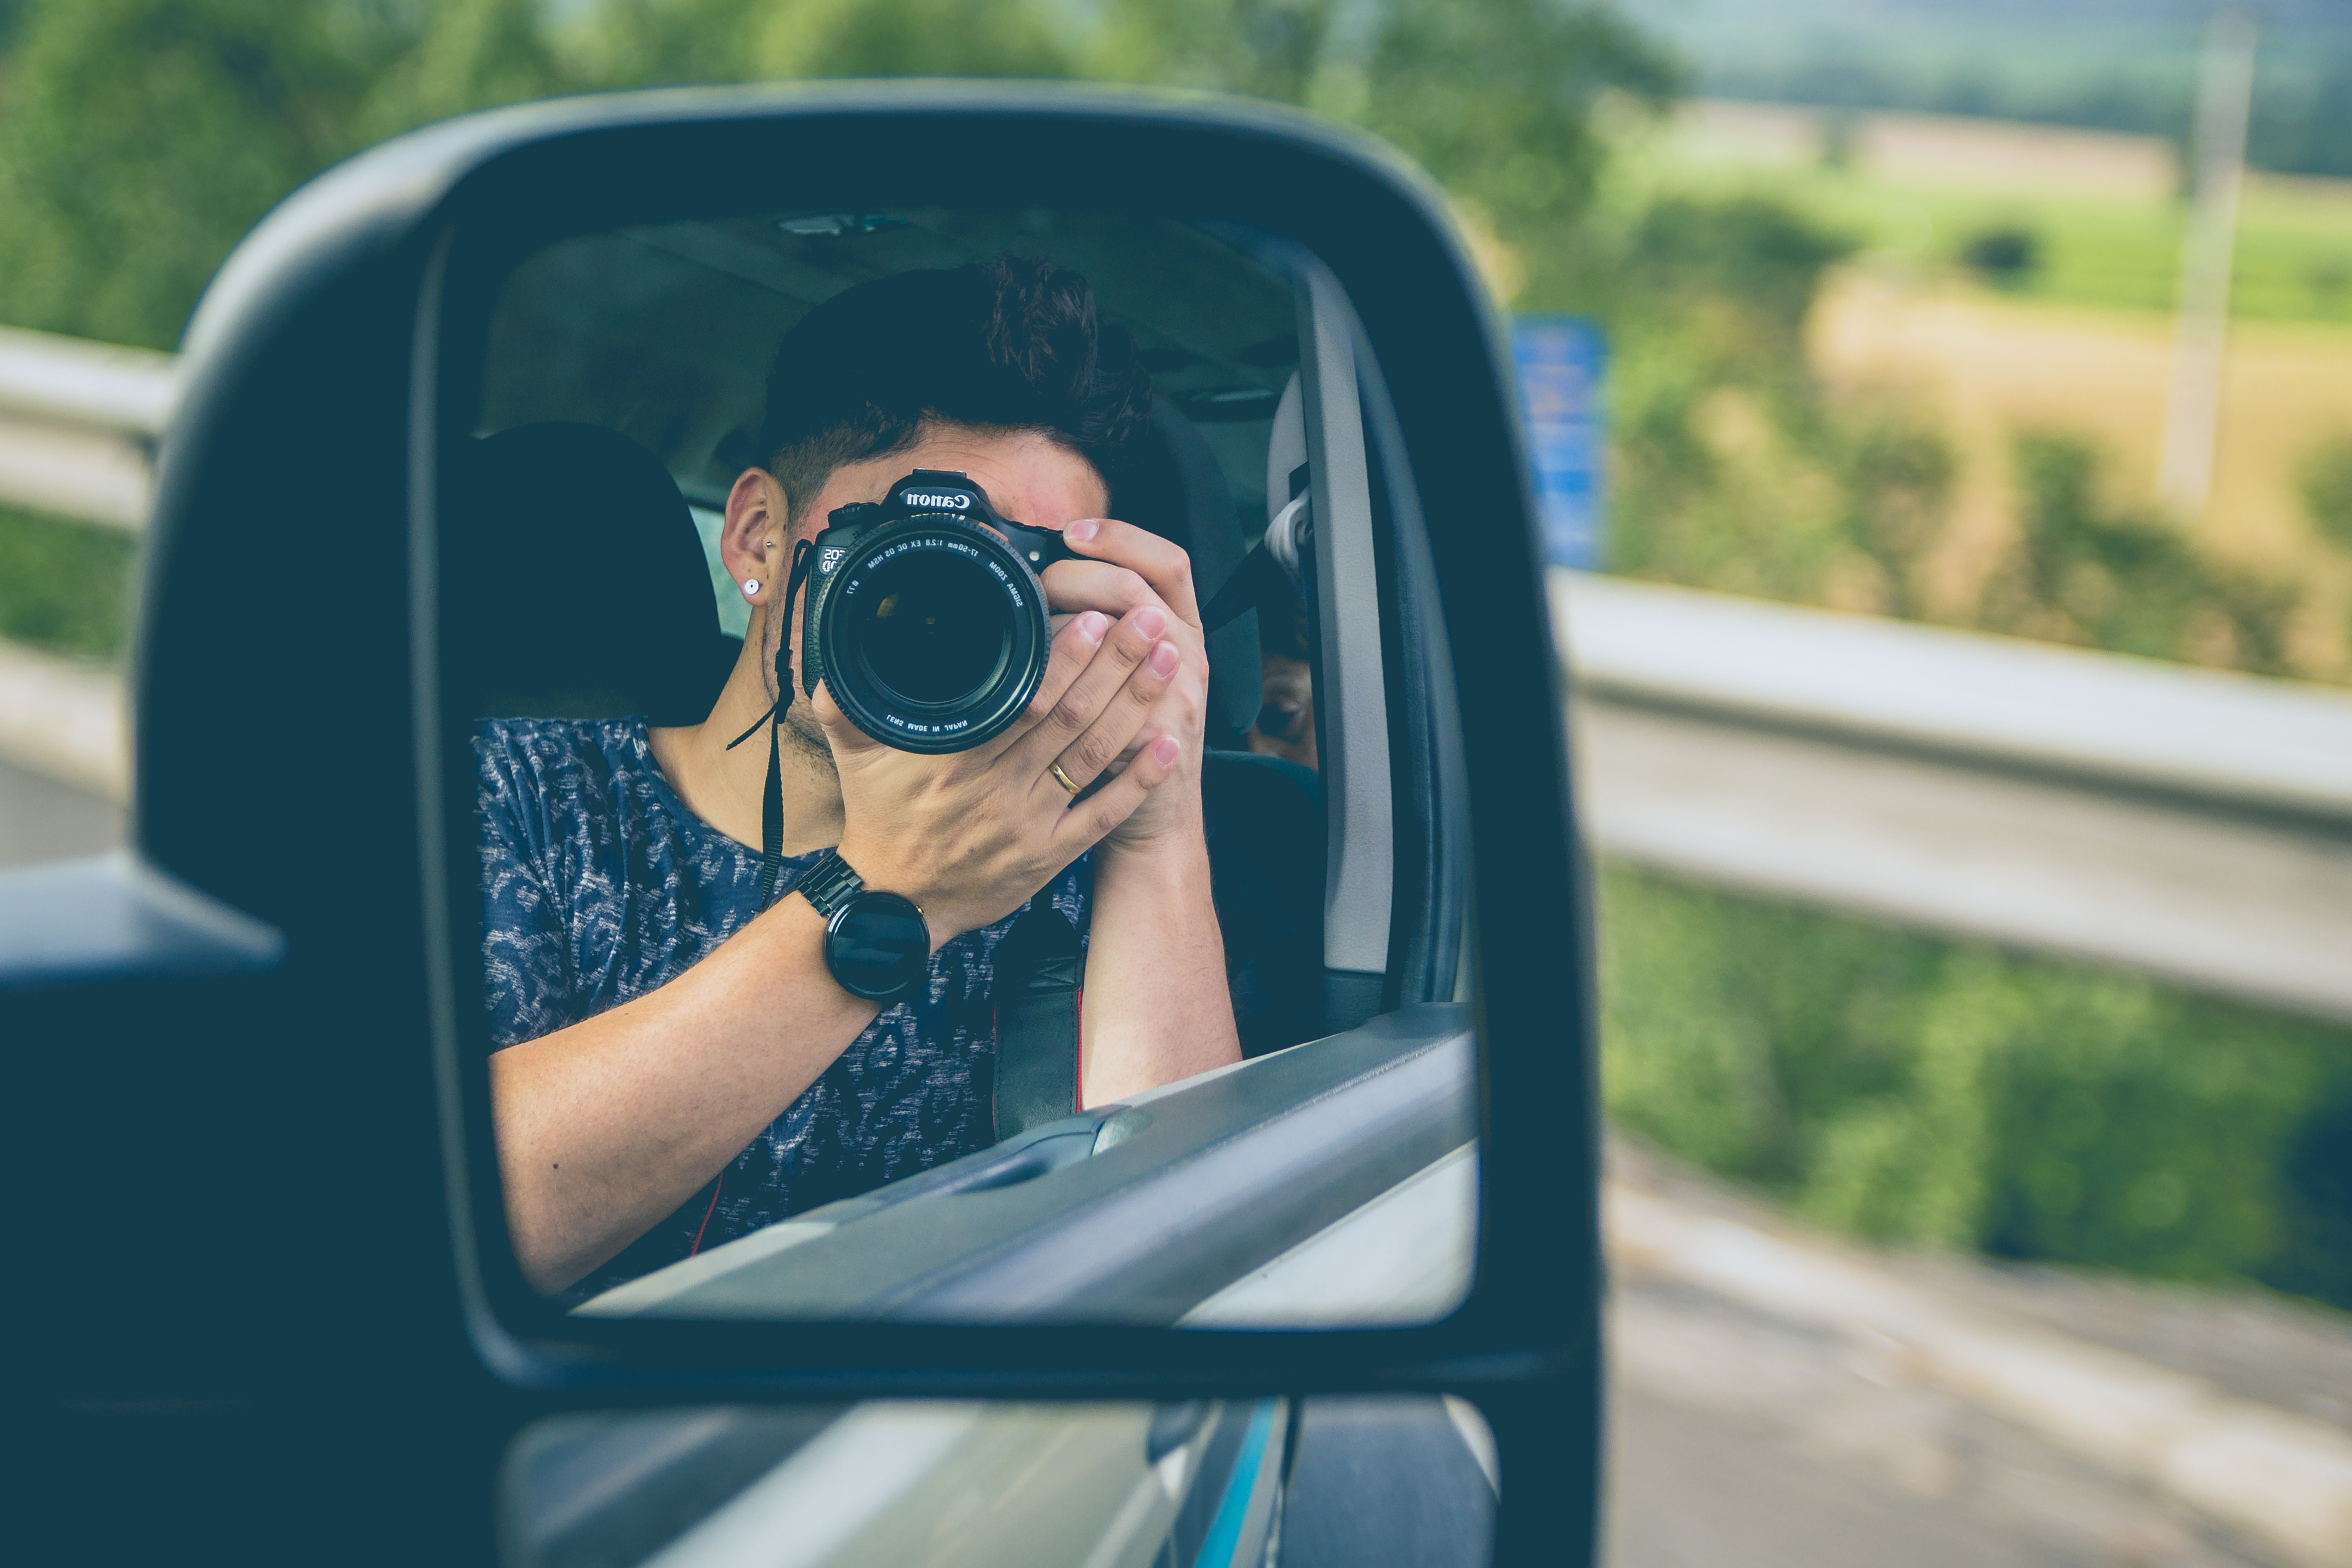 Boy-Taking-Photo-In-Car